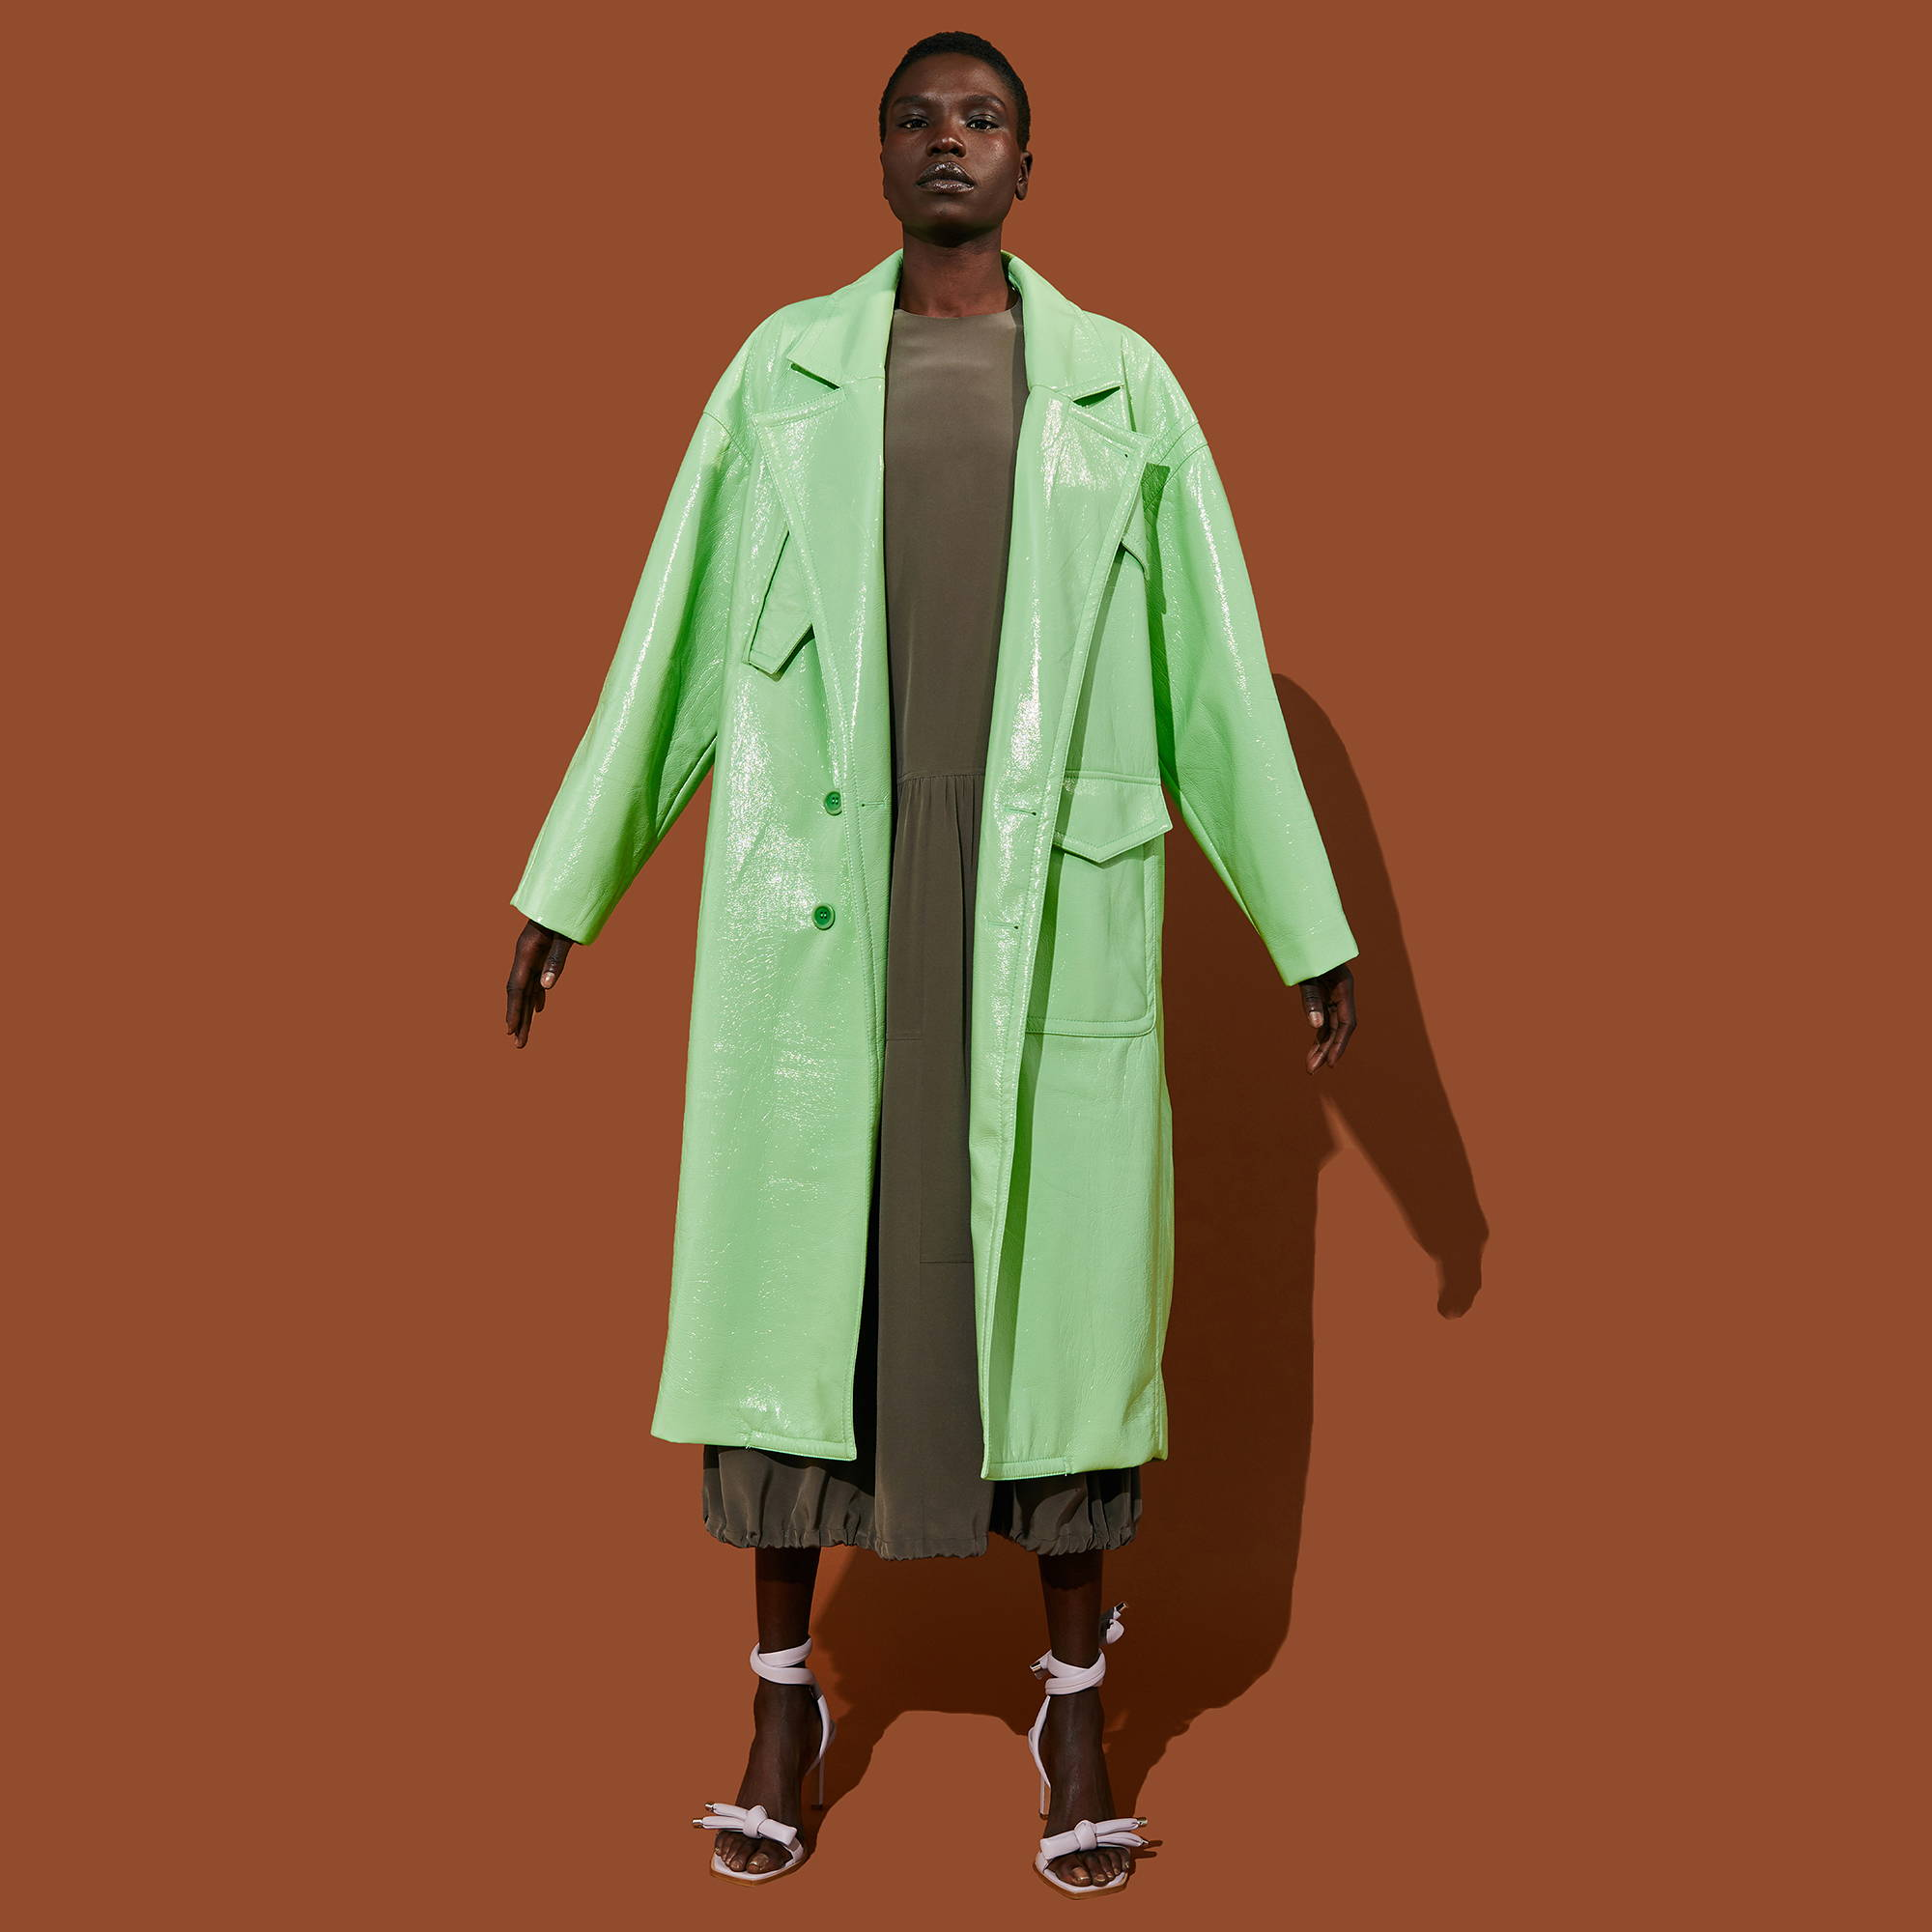 One model wears long green coat